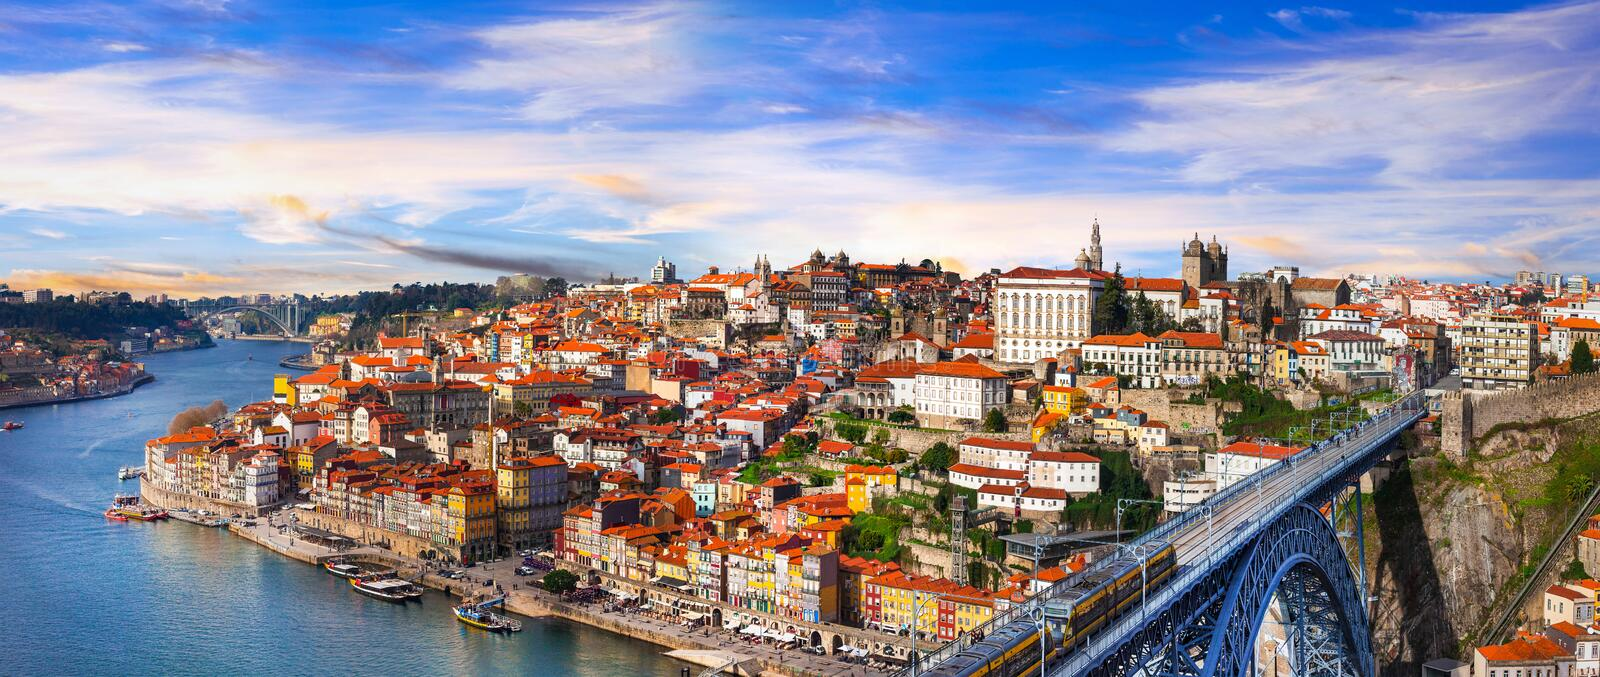 panorama of beautiful Porto over sunset - view with famous bridge of Luis, Portugal royalty free stock image